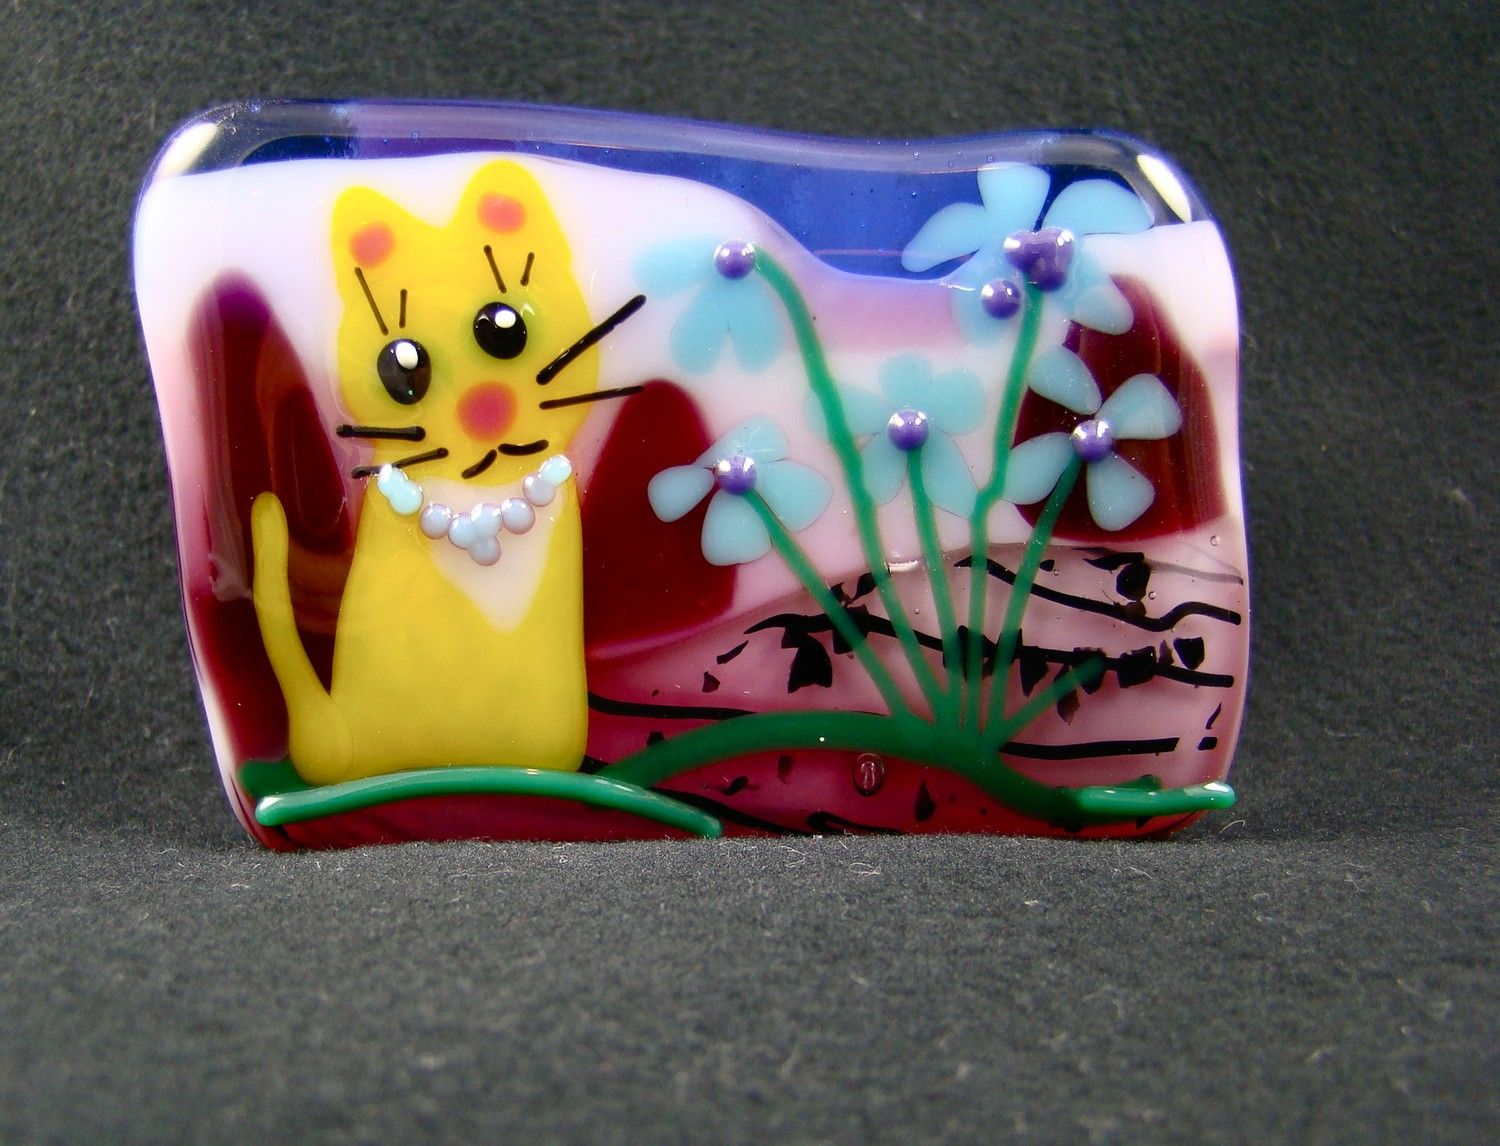 Fused glass kitty cat business card holder business card holders fused glass kitty cat business card holder colourmoves